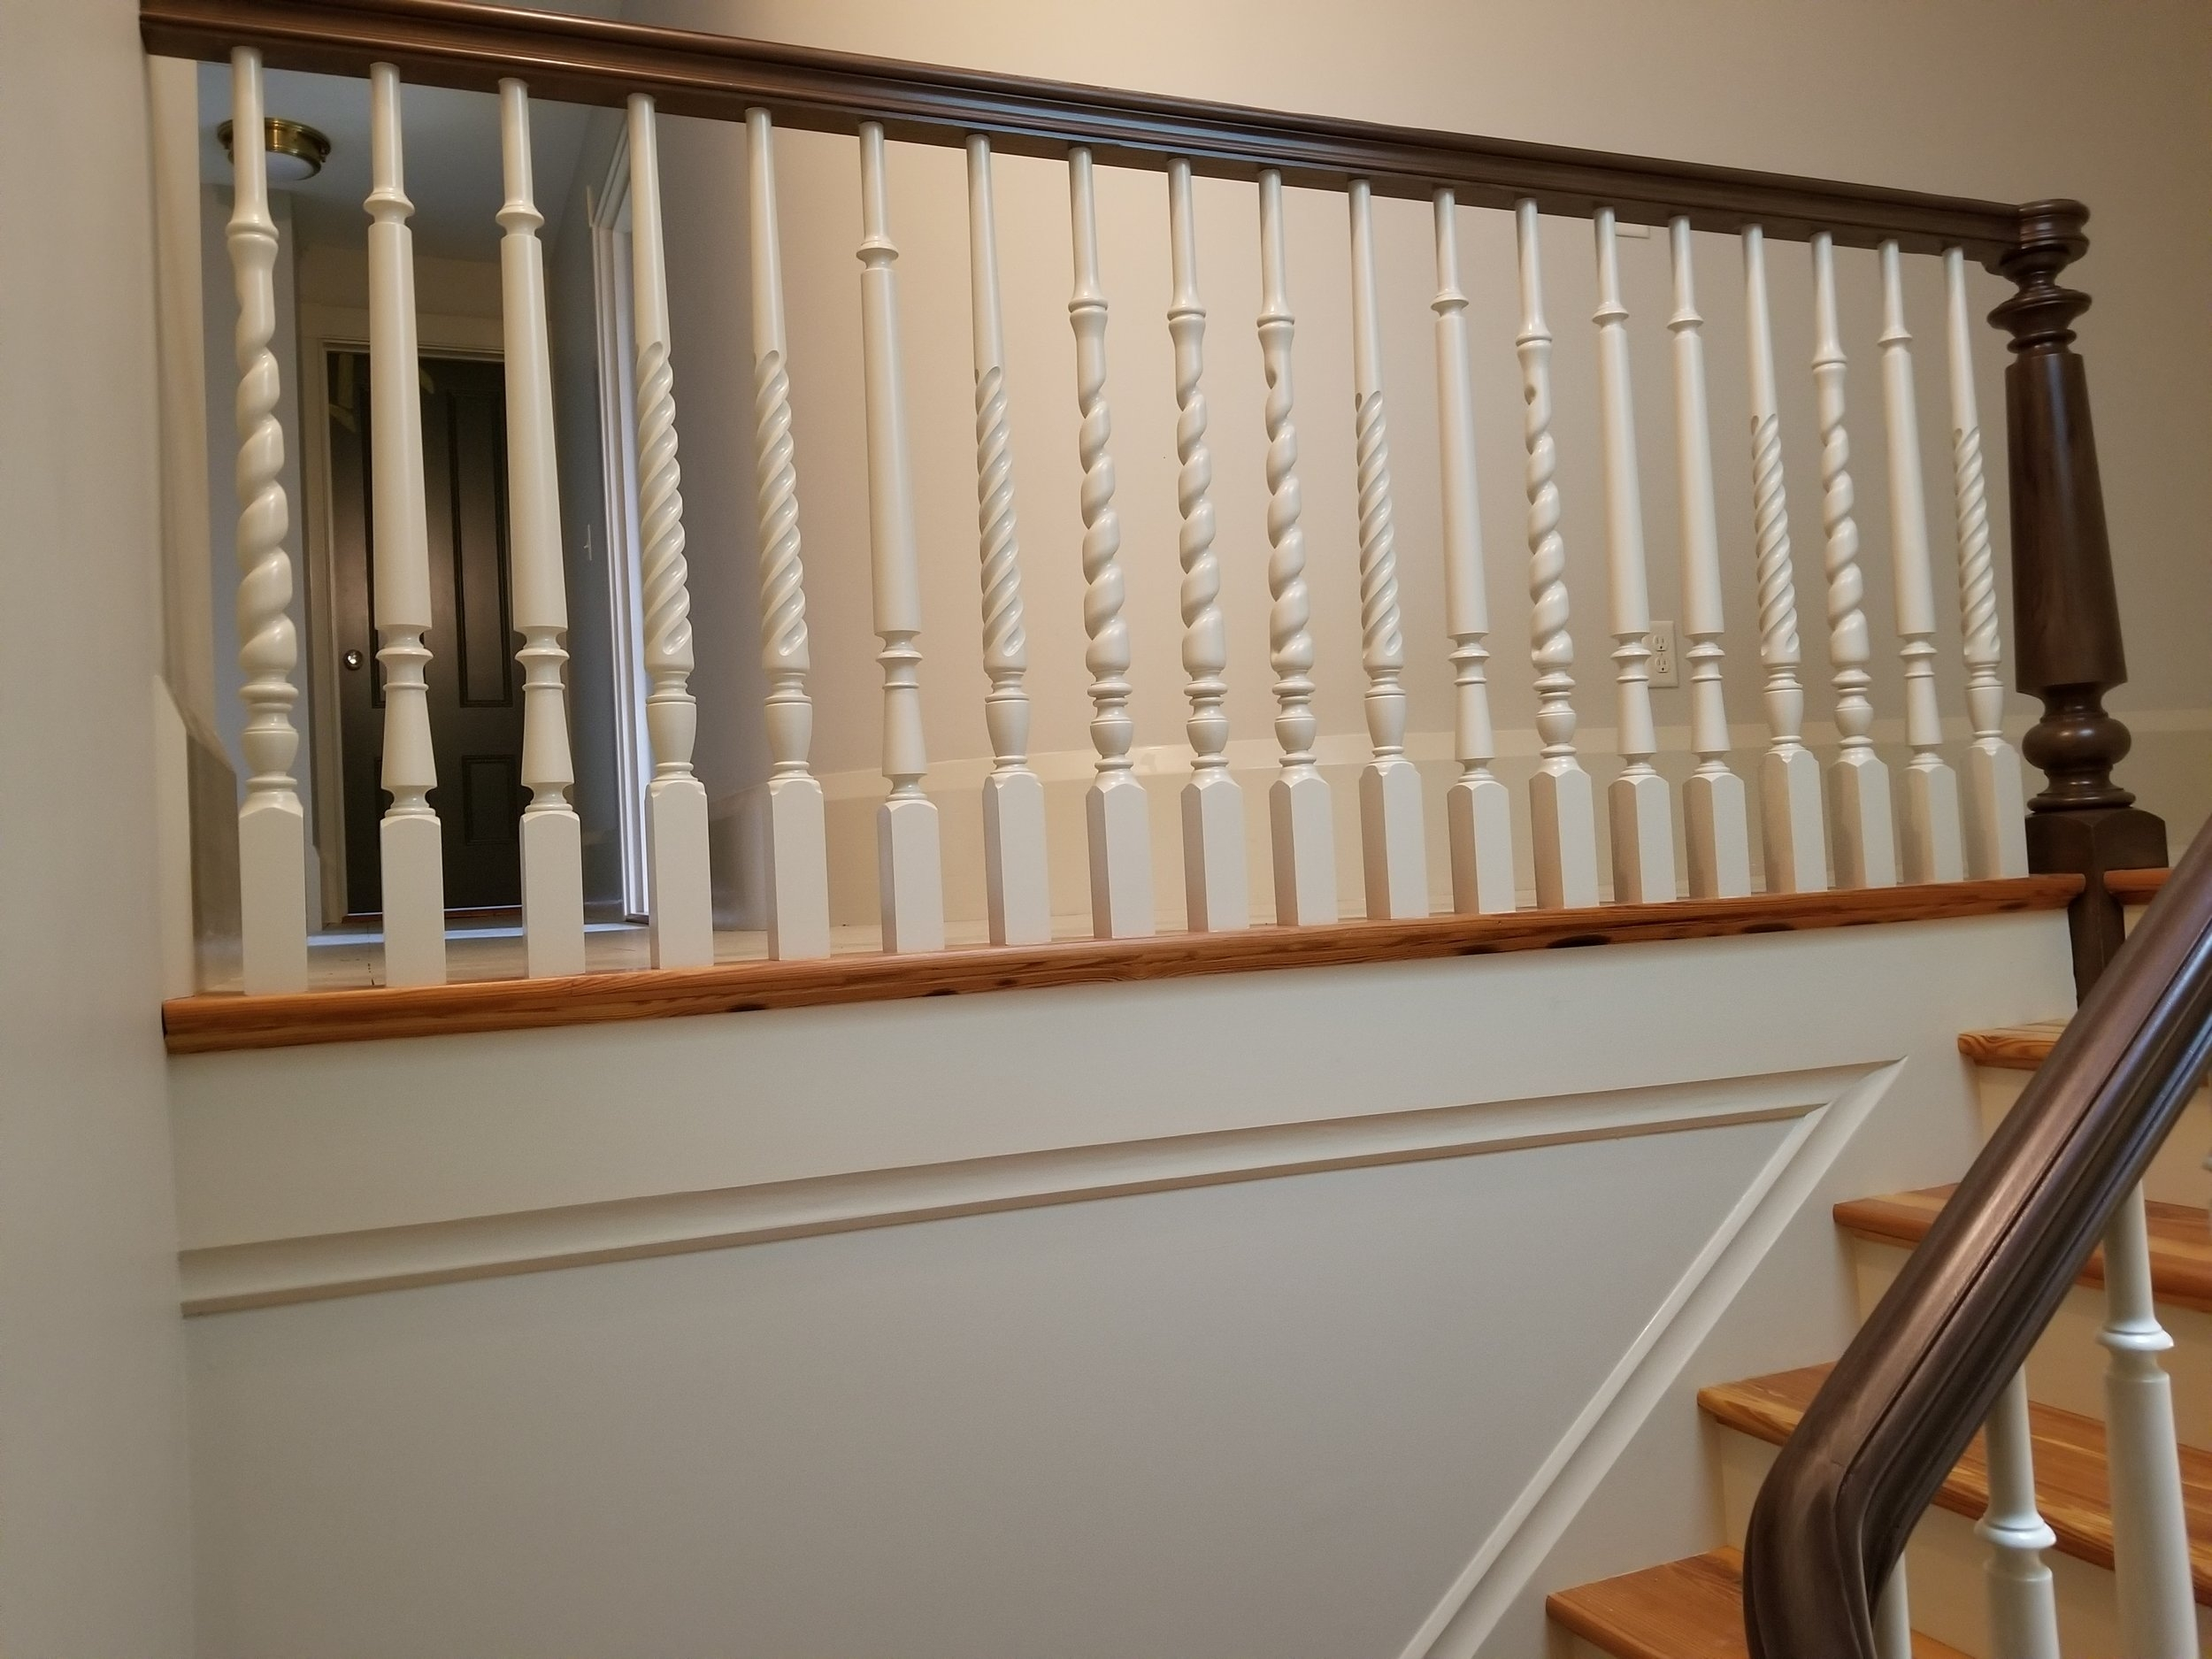 Wood Balusters — Oak Pointe Stair Parts And More | Wooden Stair Rails And Balusters | Stair Parts | Wrought Iron Balusters | Stair Spindles | Newel Posts | Stair Treads